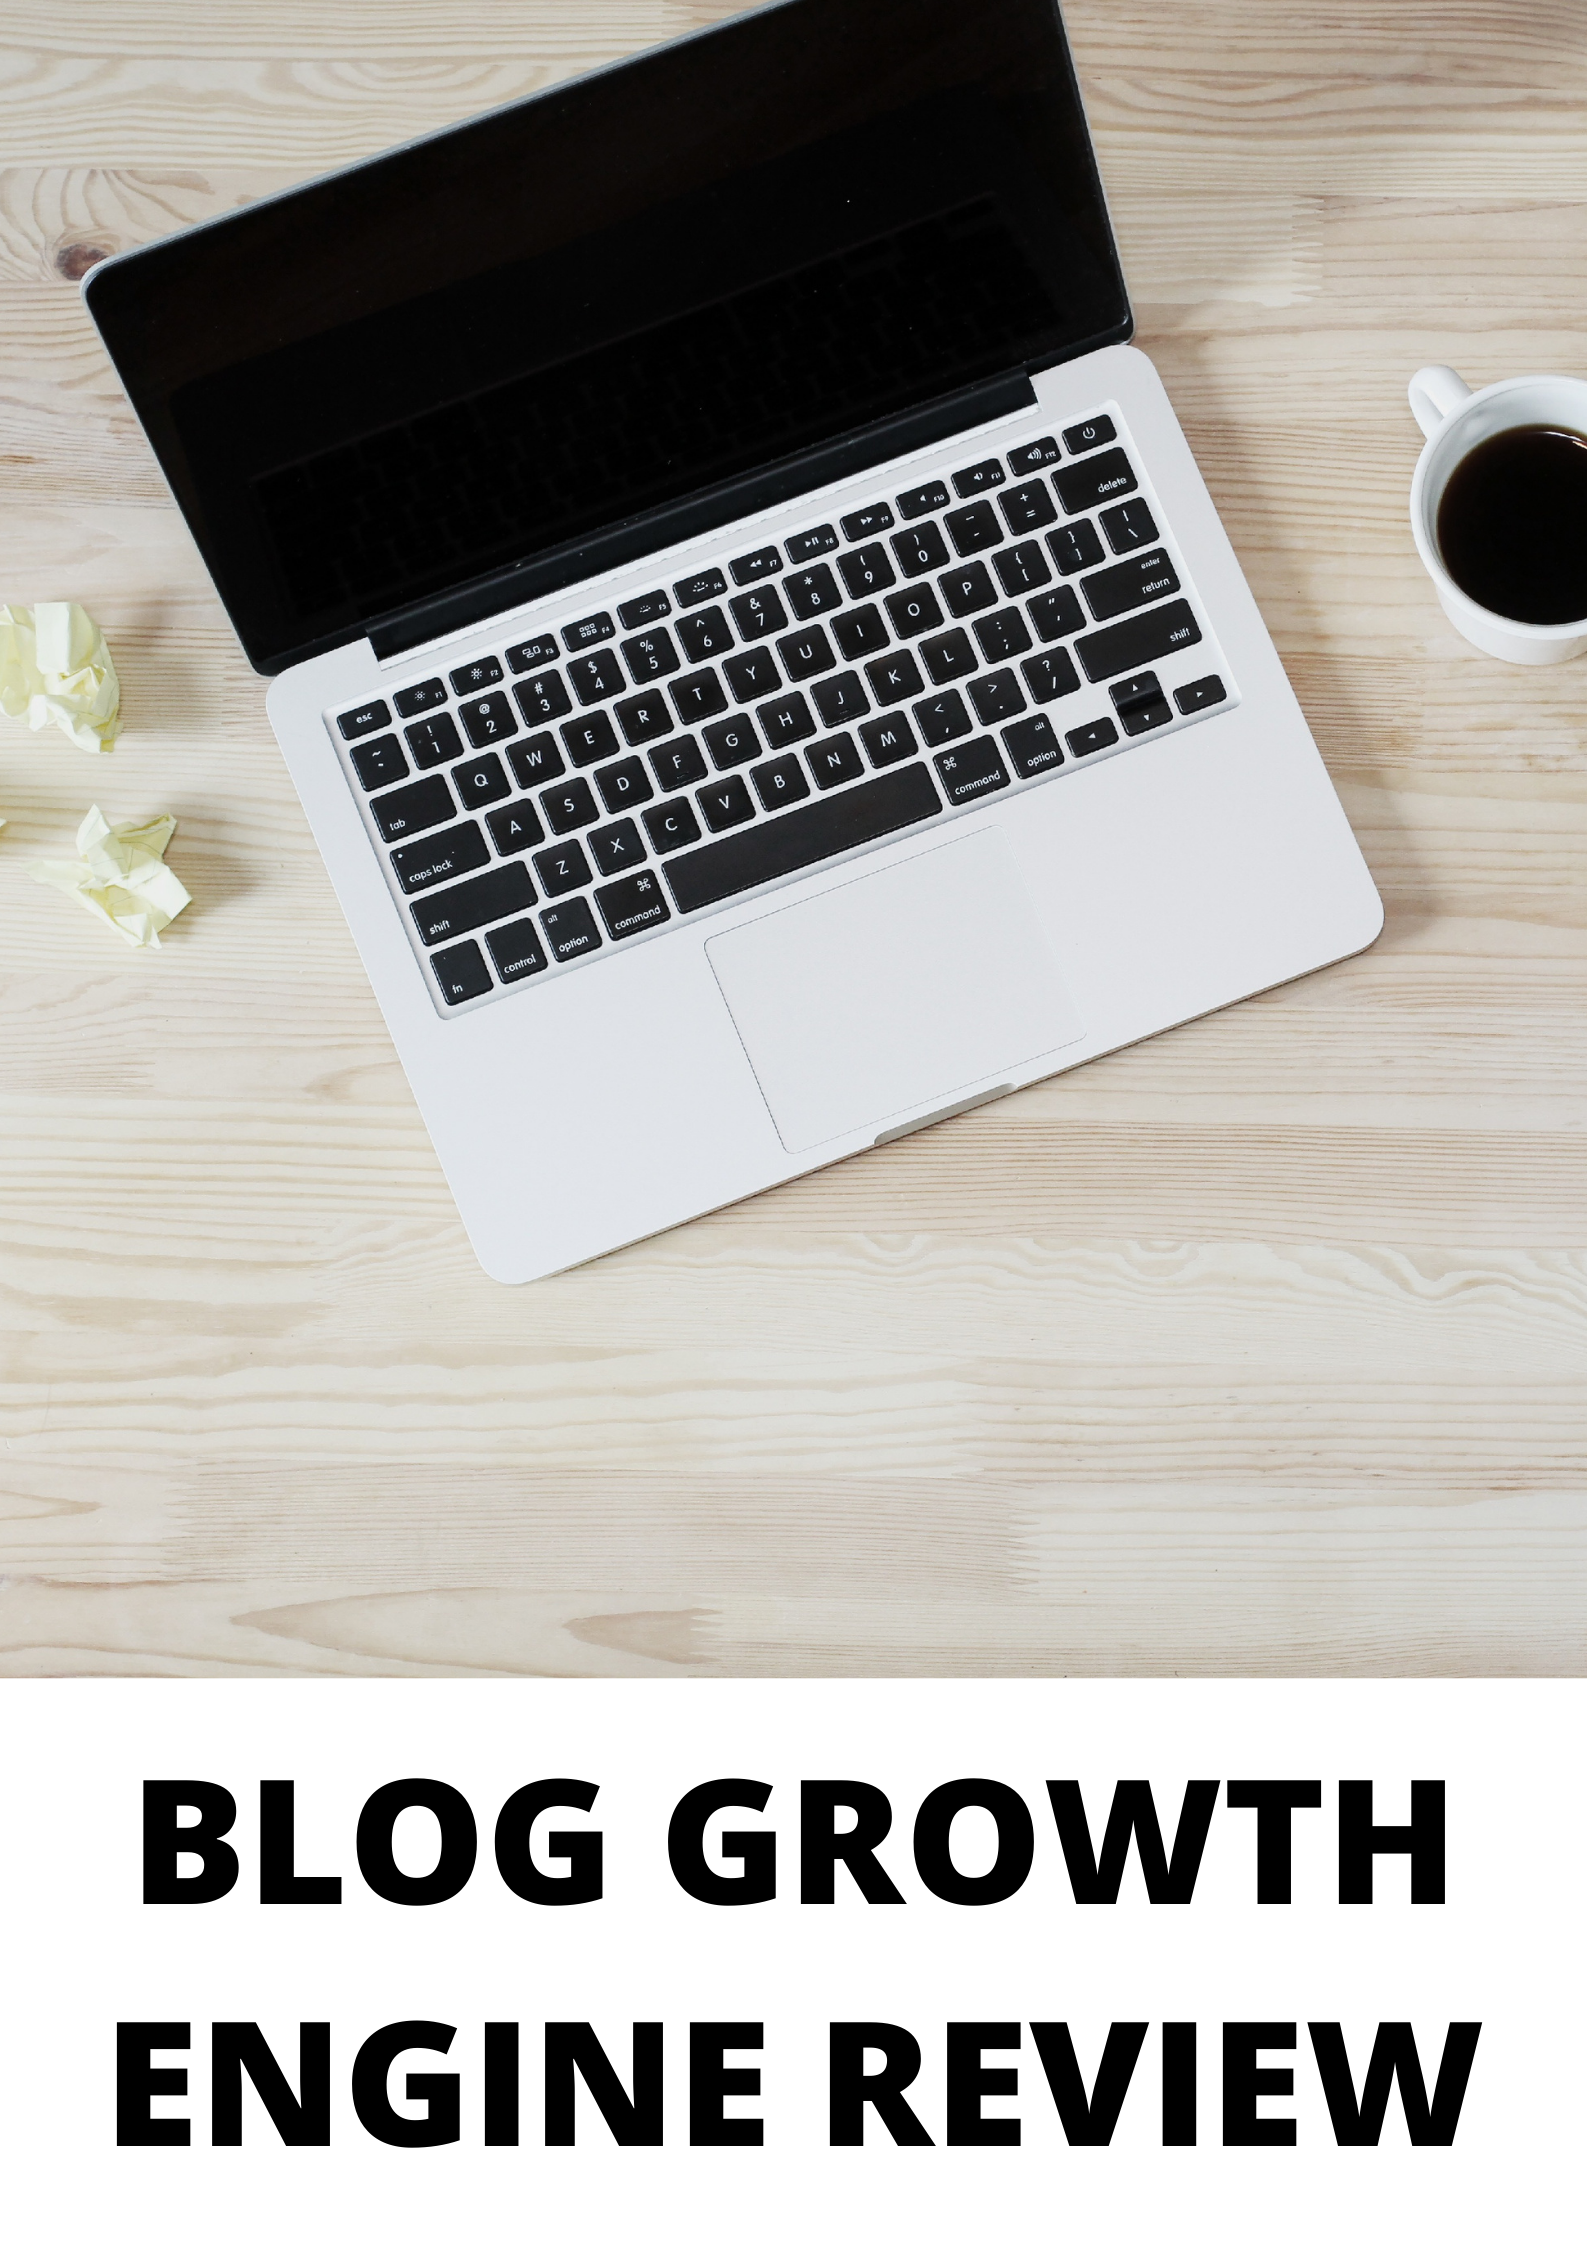 Blog growth Engine Review